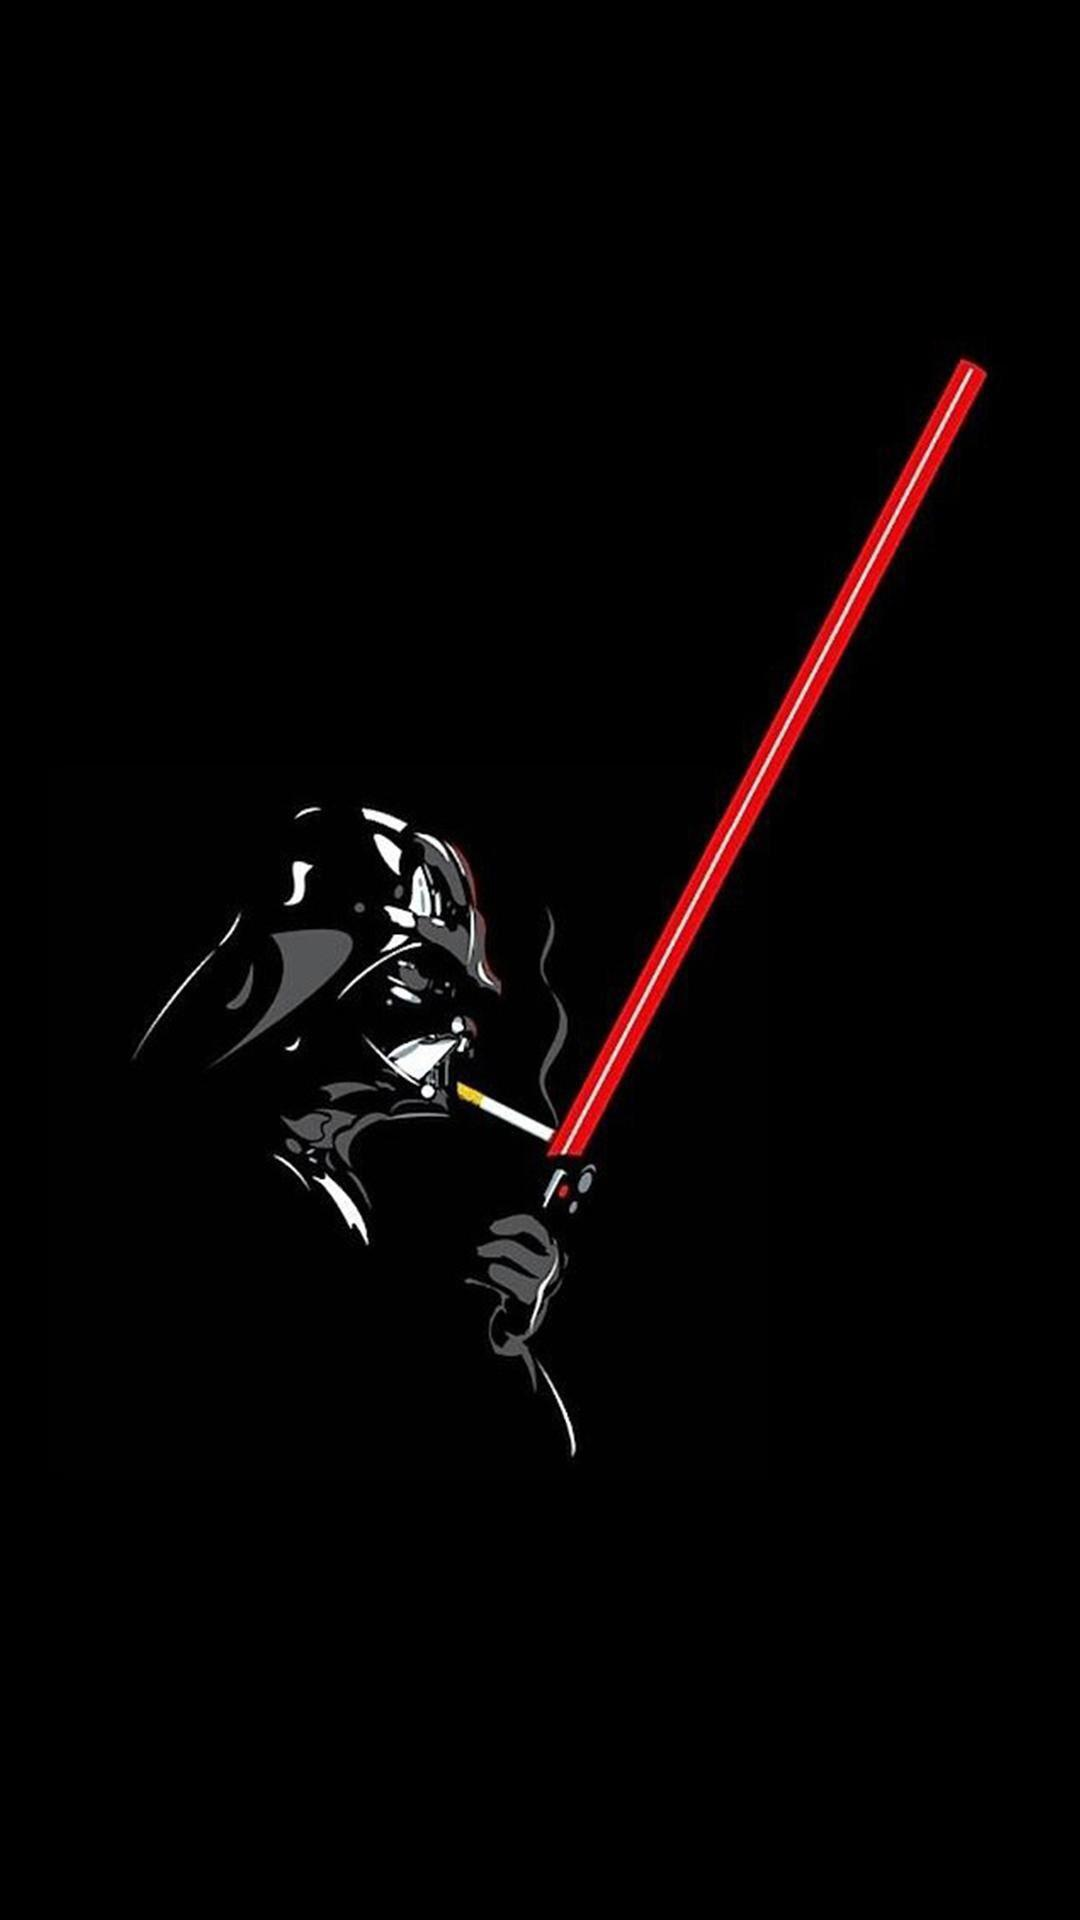 Star Wars Phone Oled Wallpapers Wallpaper Cave